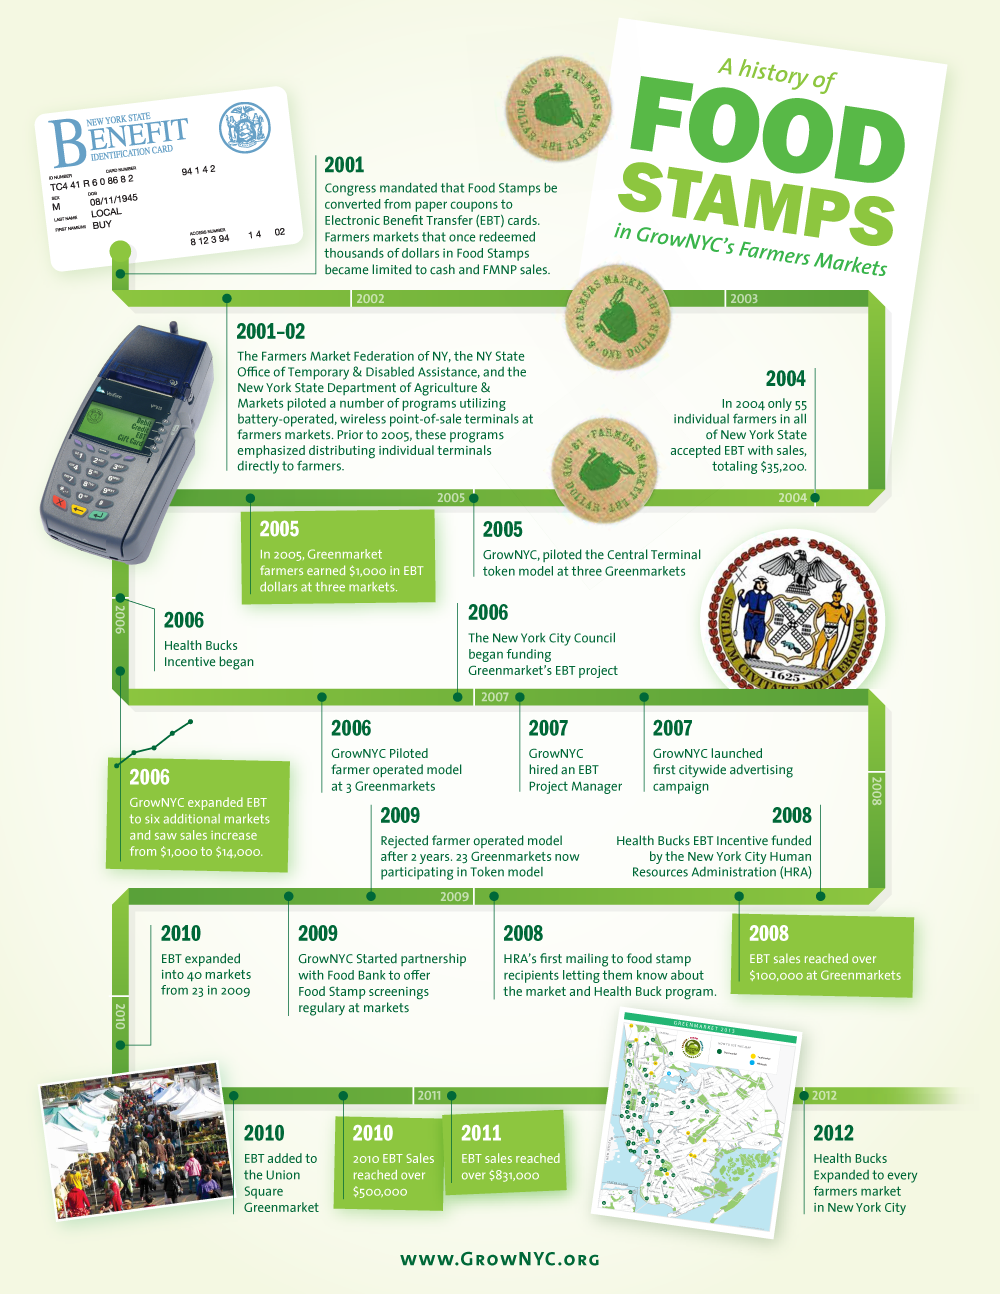 Infographic A History Of Food Stamps At Grownycs Farmers Markets